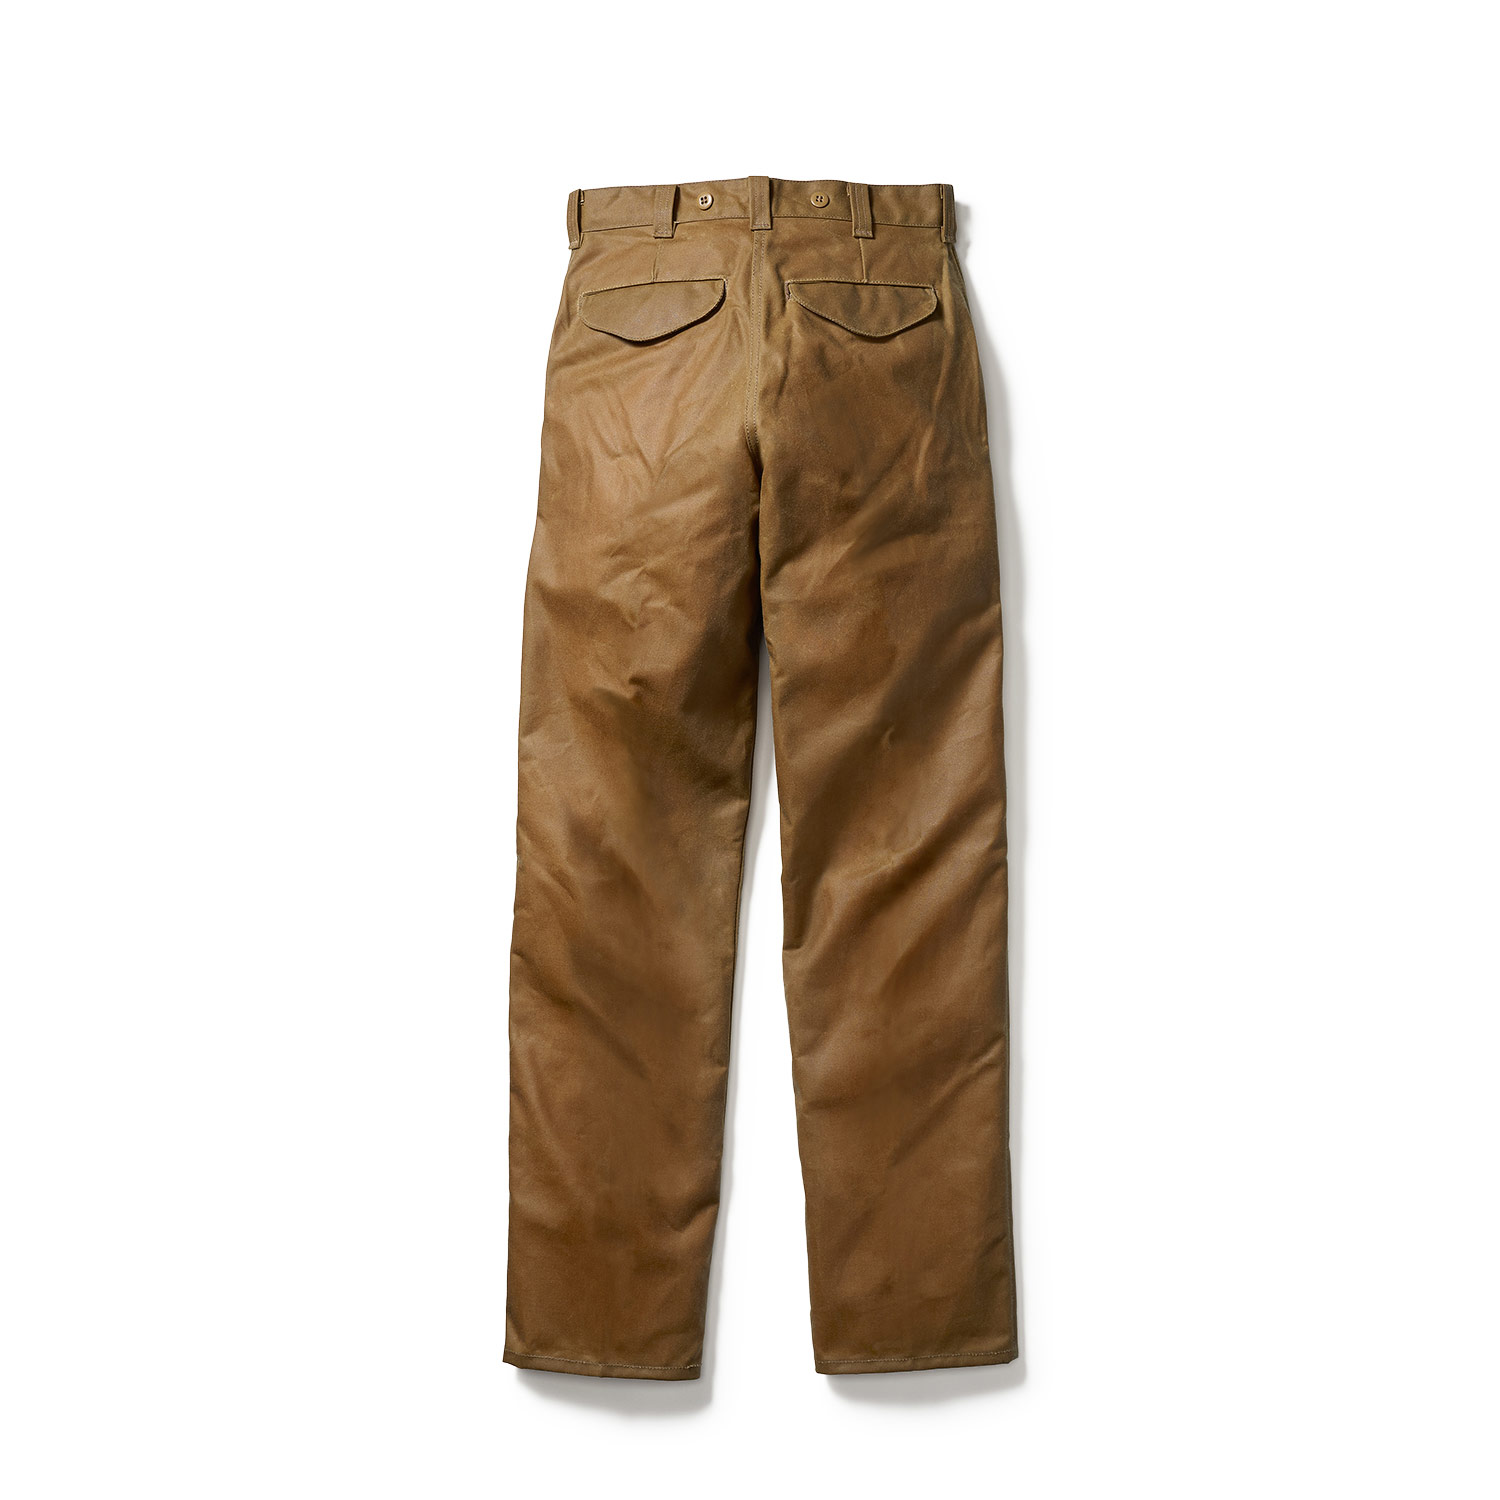 Filson single tin cloth chaps